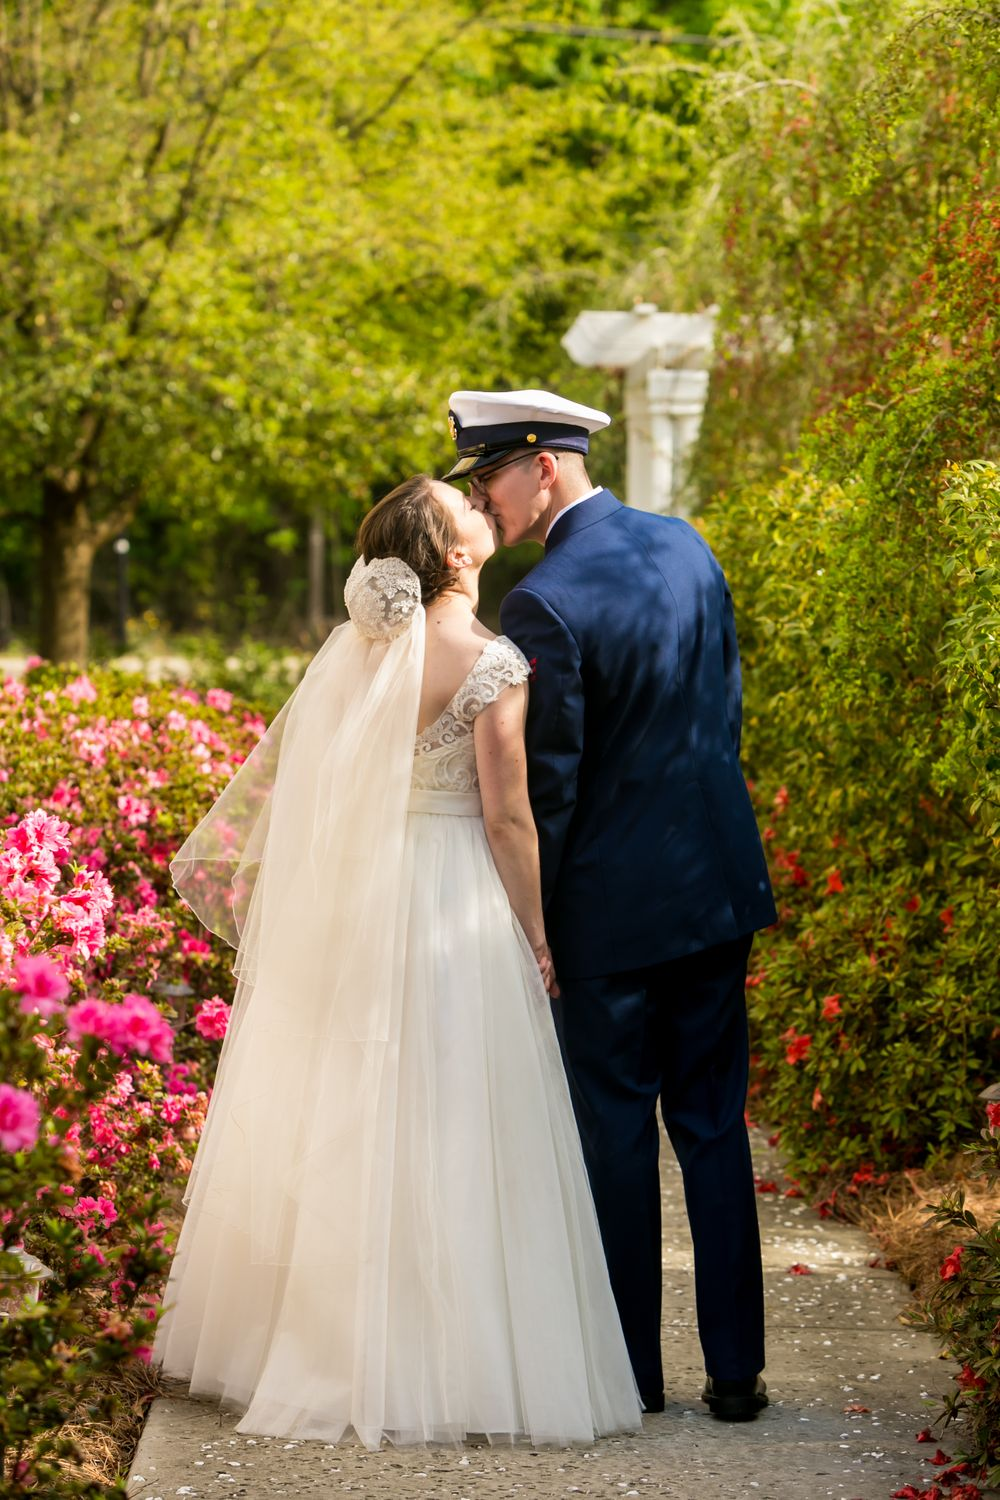 Bride Natalie and groom Ross kiss while walking through the gardens after their wedding at the Springdale House